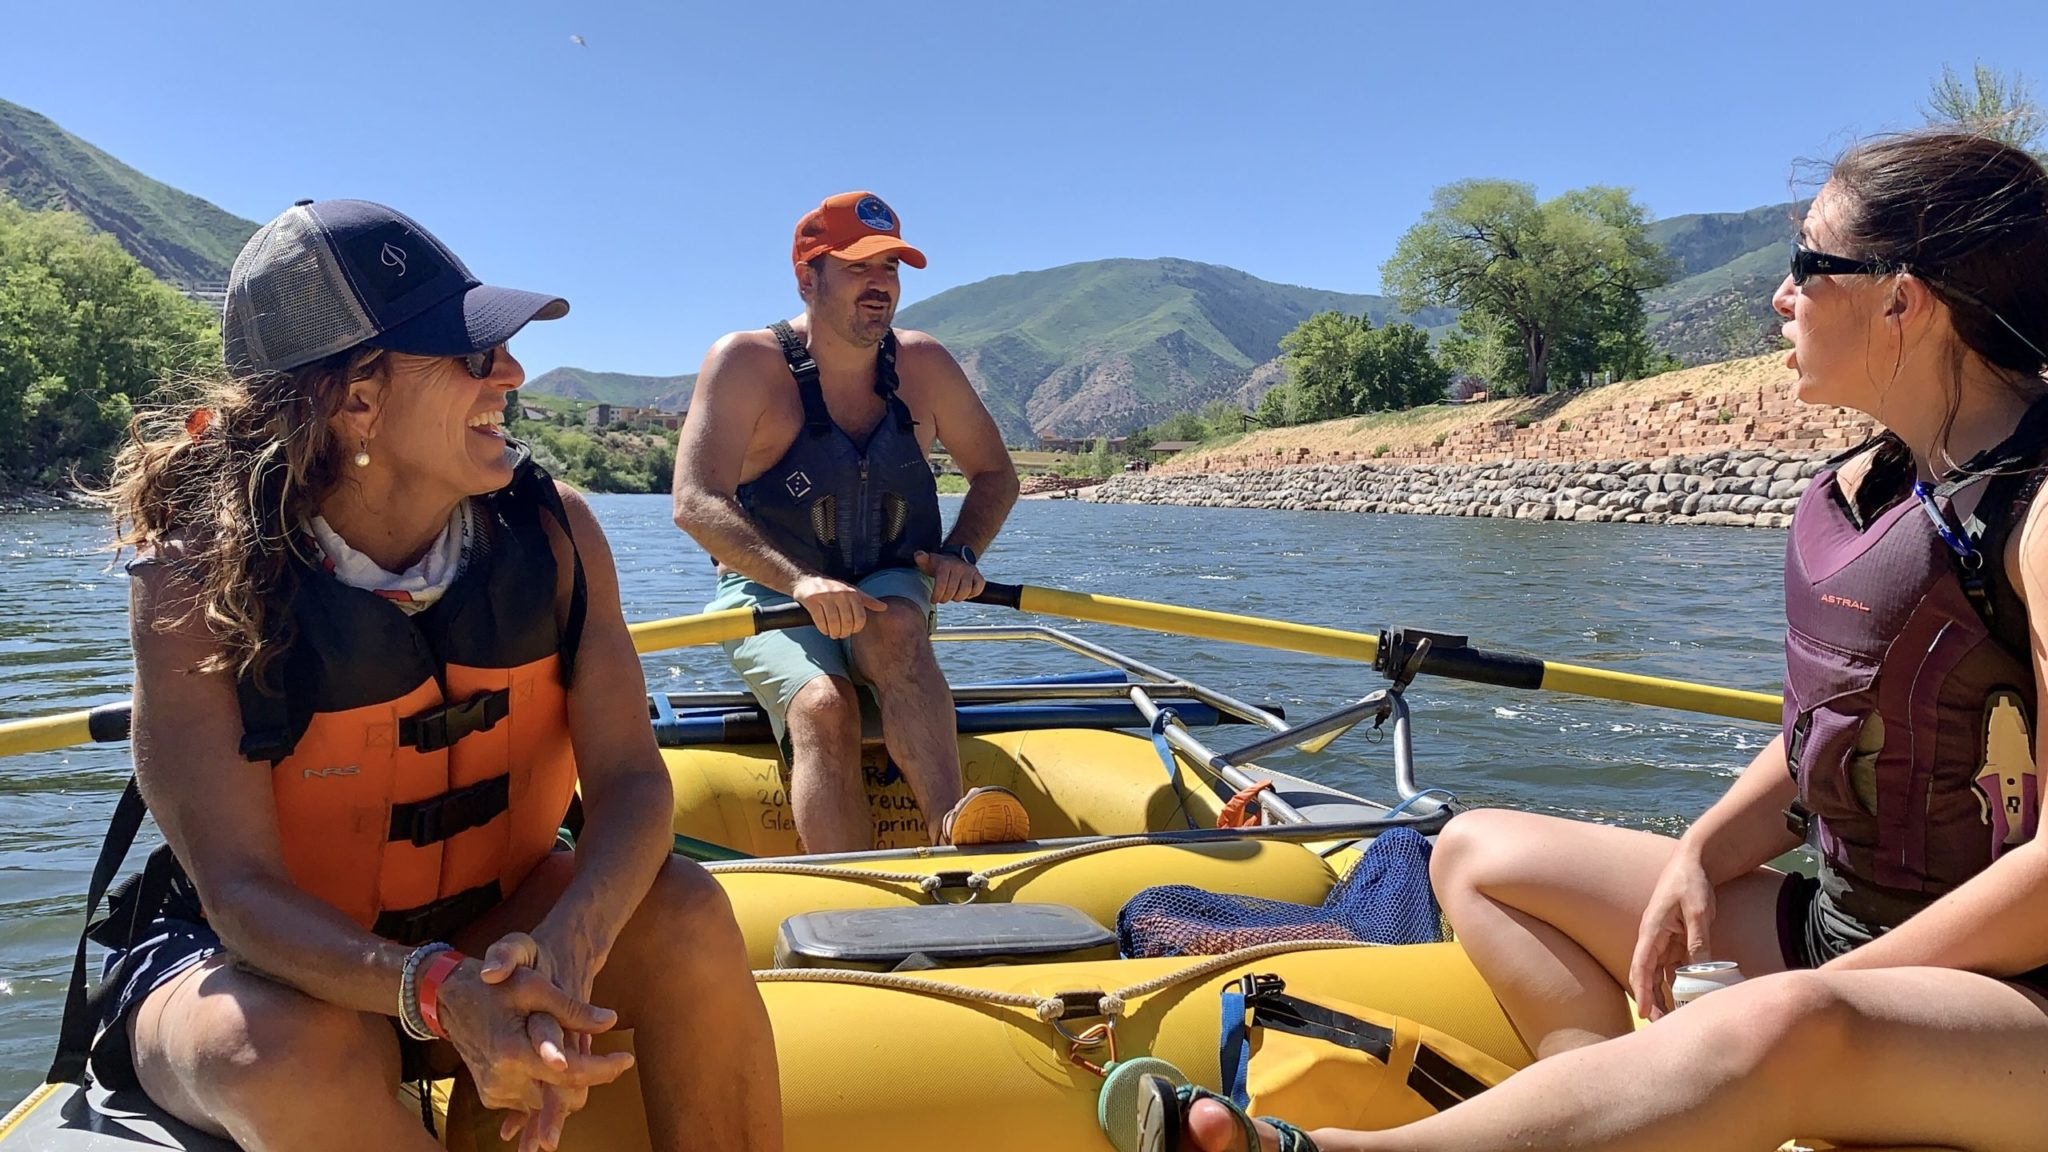 A FAM Tour in Glenwood Springs - Part 1 Water Paradise